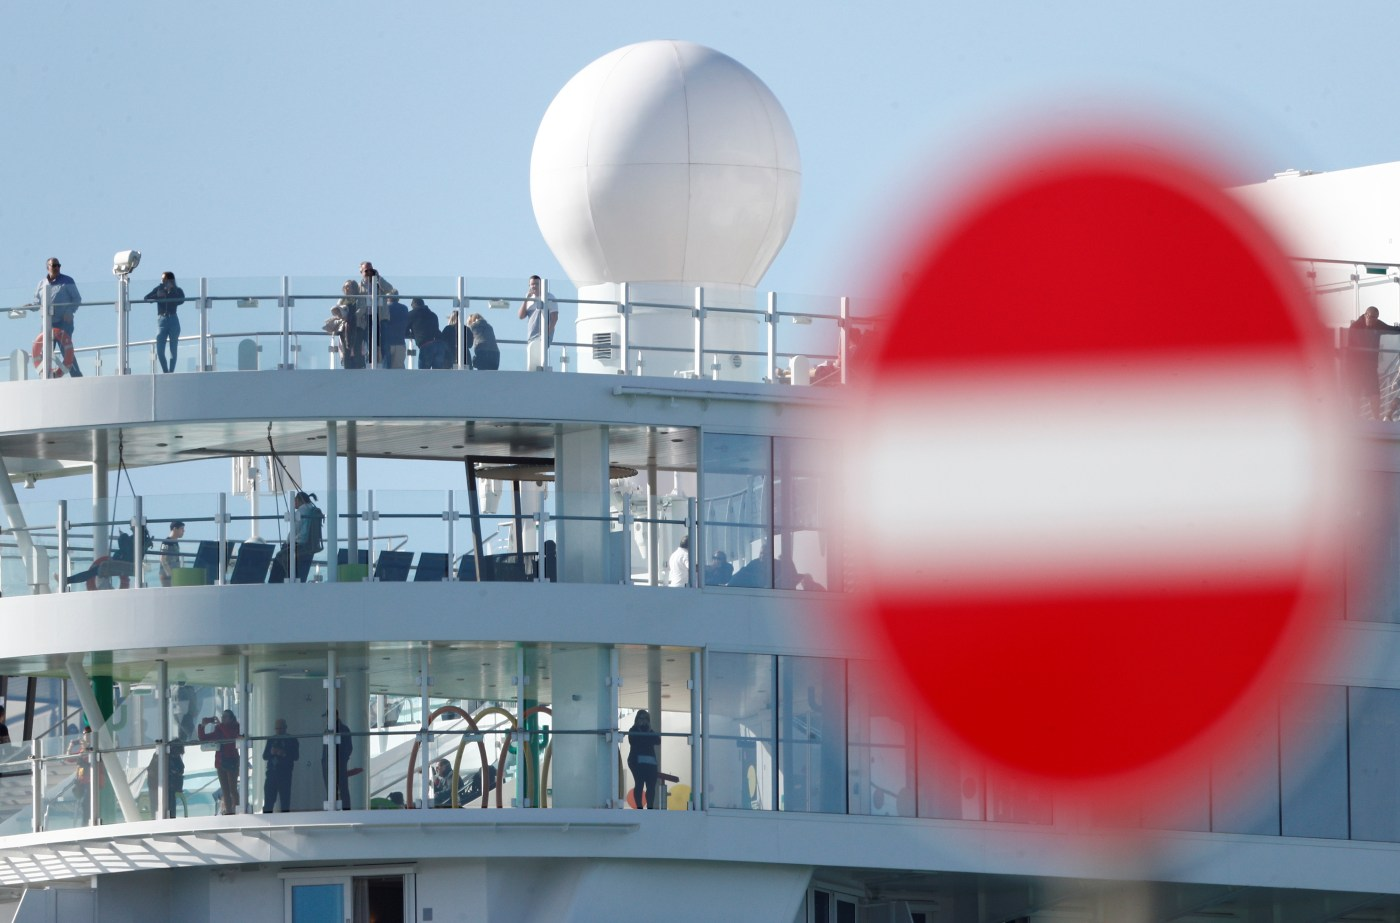 Passengers are seen on board the Costa Smeralda as it sits docked at the Italian port of Civitavecchia following a health alert